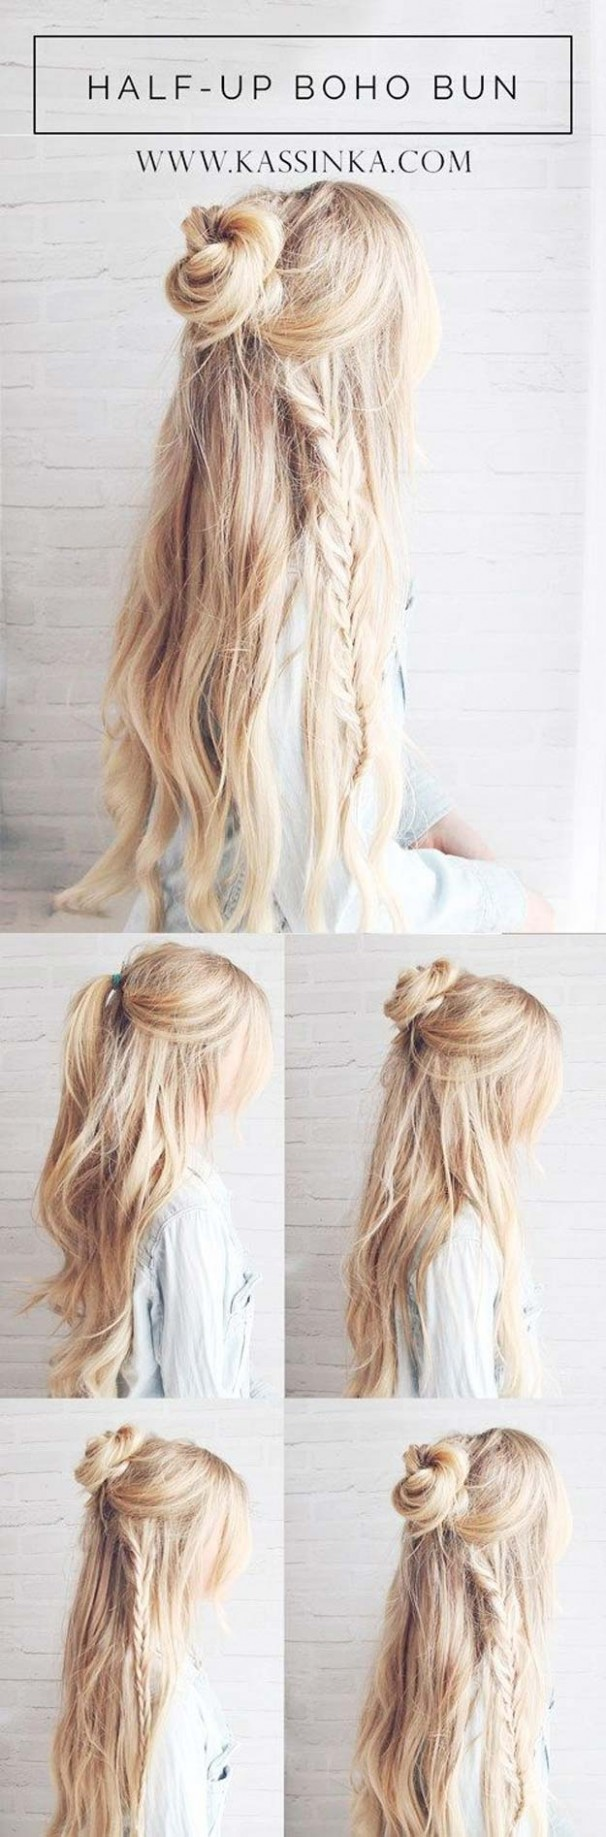 12 Best Hairstyles for Long Hair - DIY Projects for Teens